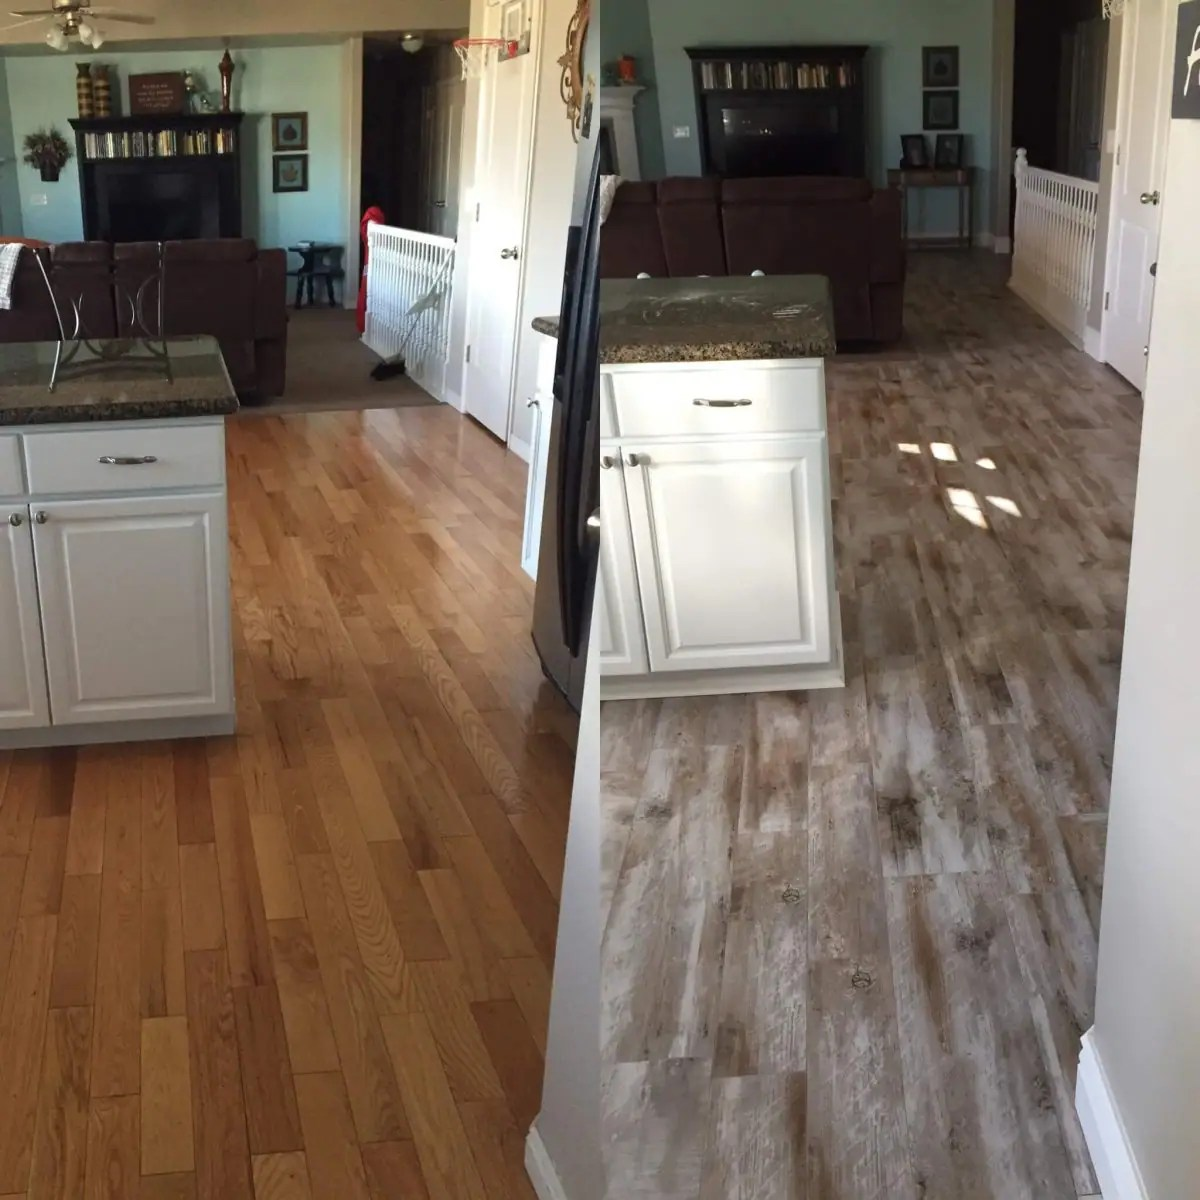 kitchen wood tile floor replacement drawer box flooring before and after reveal looking 365